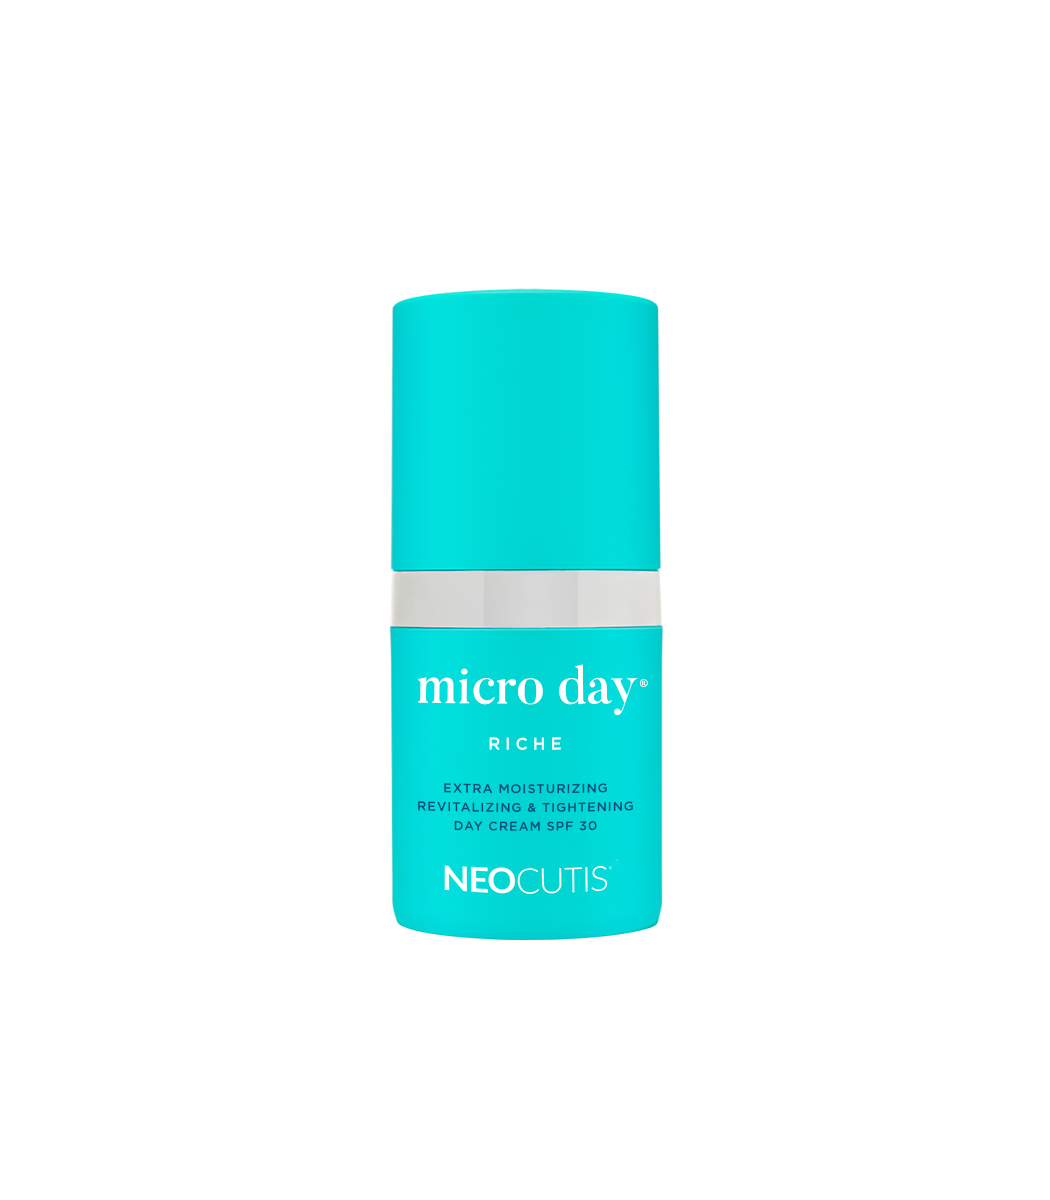 NEOCUTIS  Micro  Day  Riche |  Extra Moisturizing Revitalizing & Tightening Day Cream SPF 30 | 1.69 Oz | New look